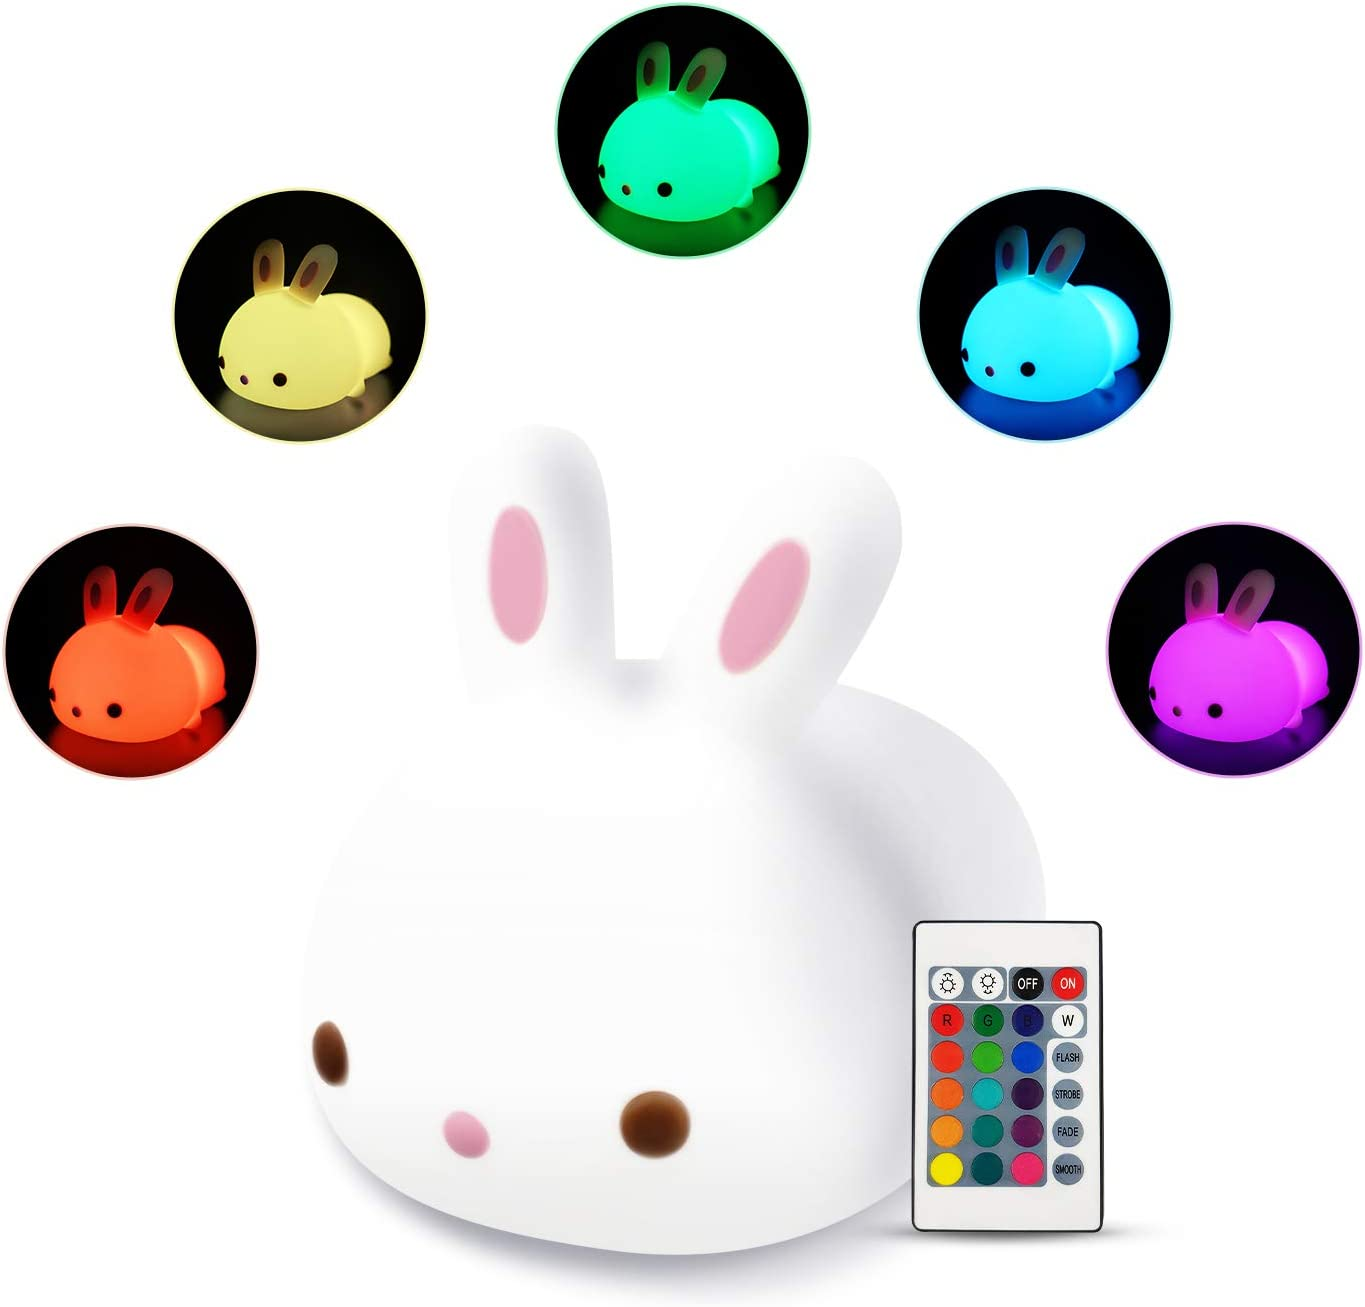 Cute Squishy Bunny Night Light - Silicon Rabbit Bunnies Pets Nursery Color Changing LED Decor Sleep Lamp Lights with Touch Sensor and Remote Control for Kids, Childrens, Toddler, Baby, and Girls